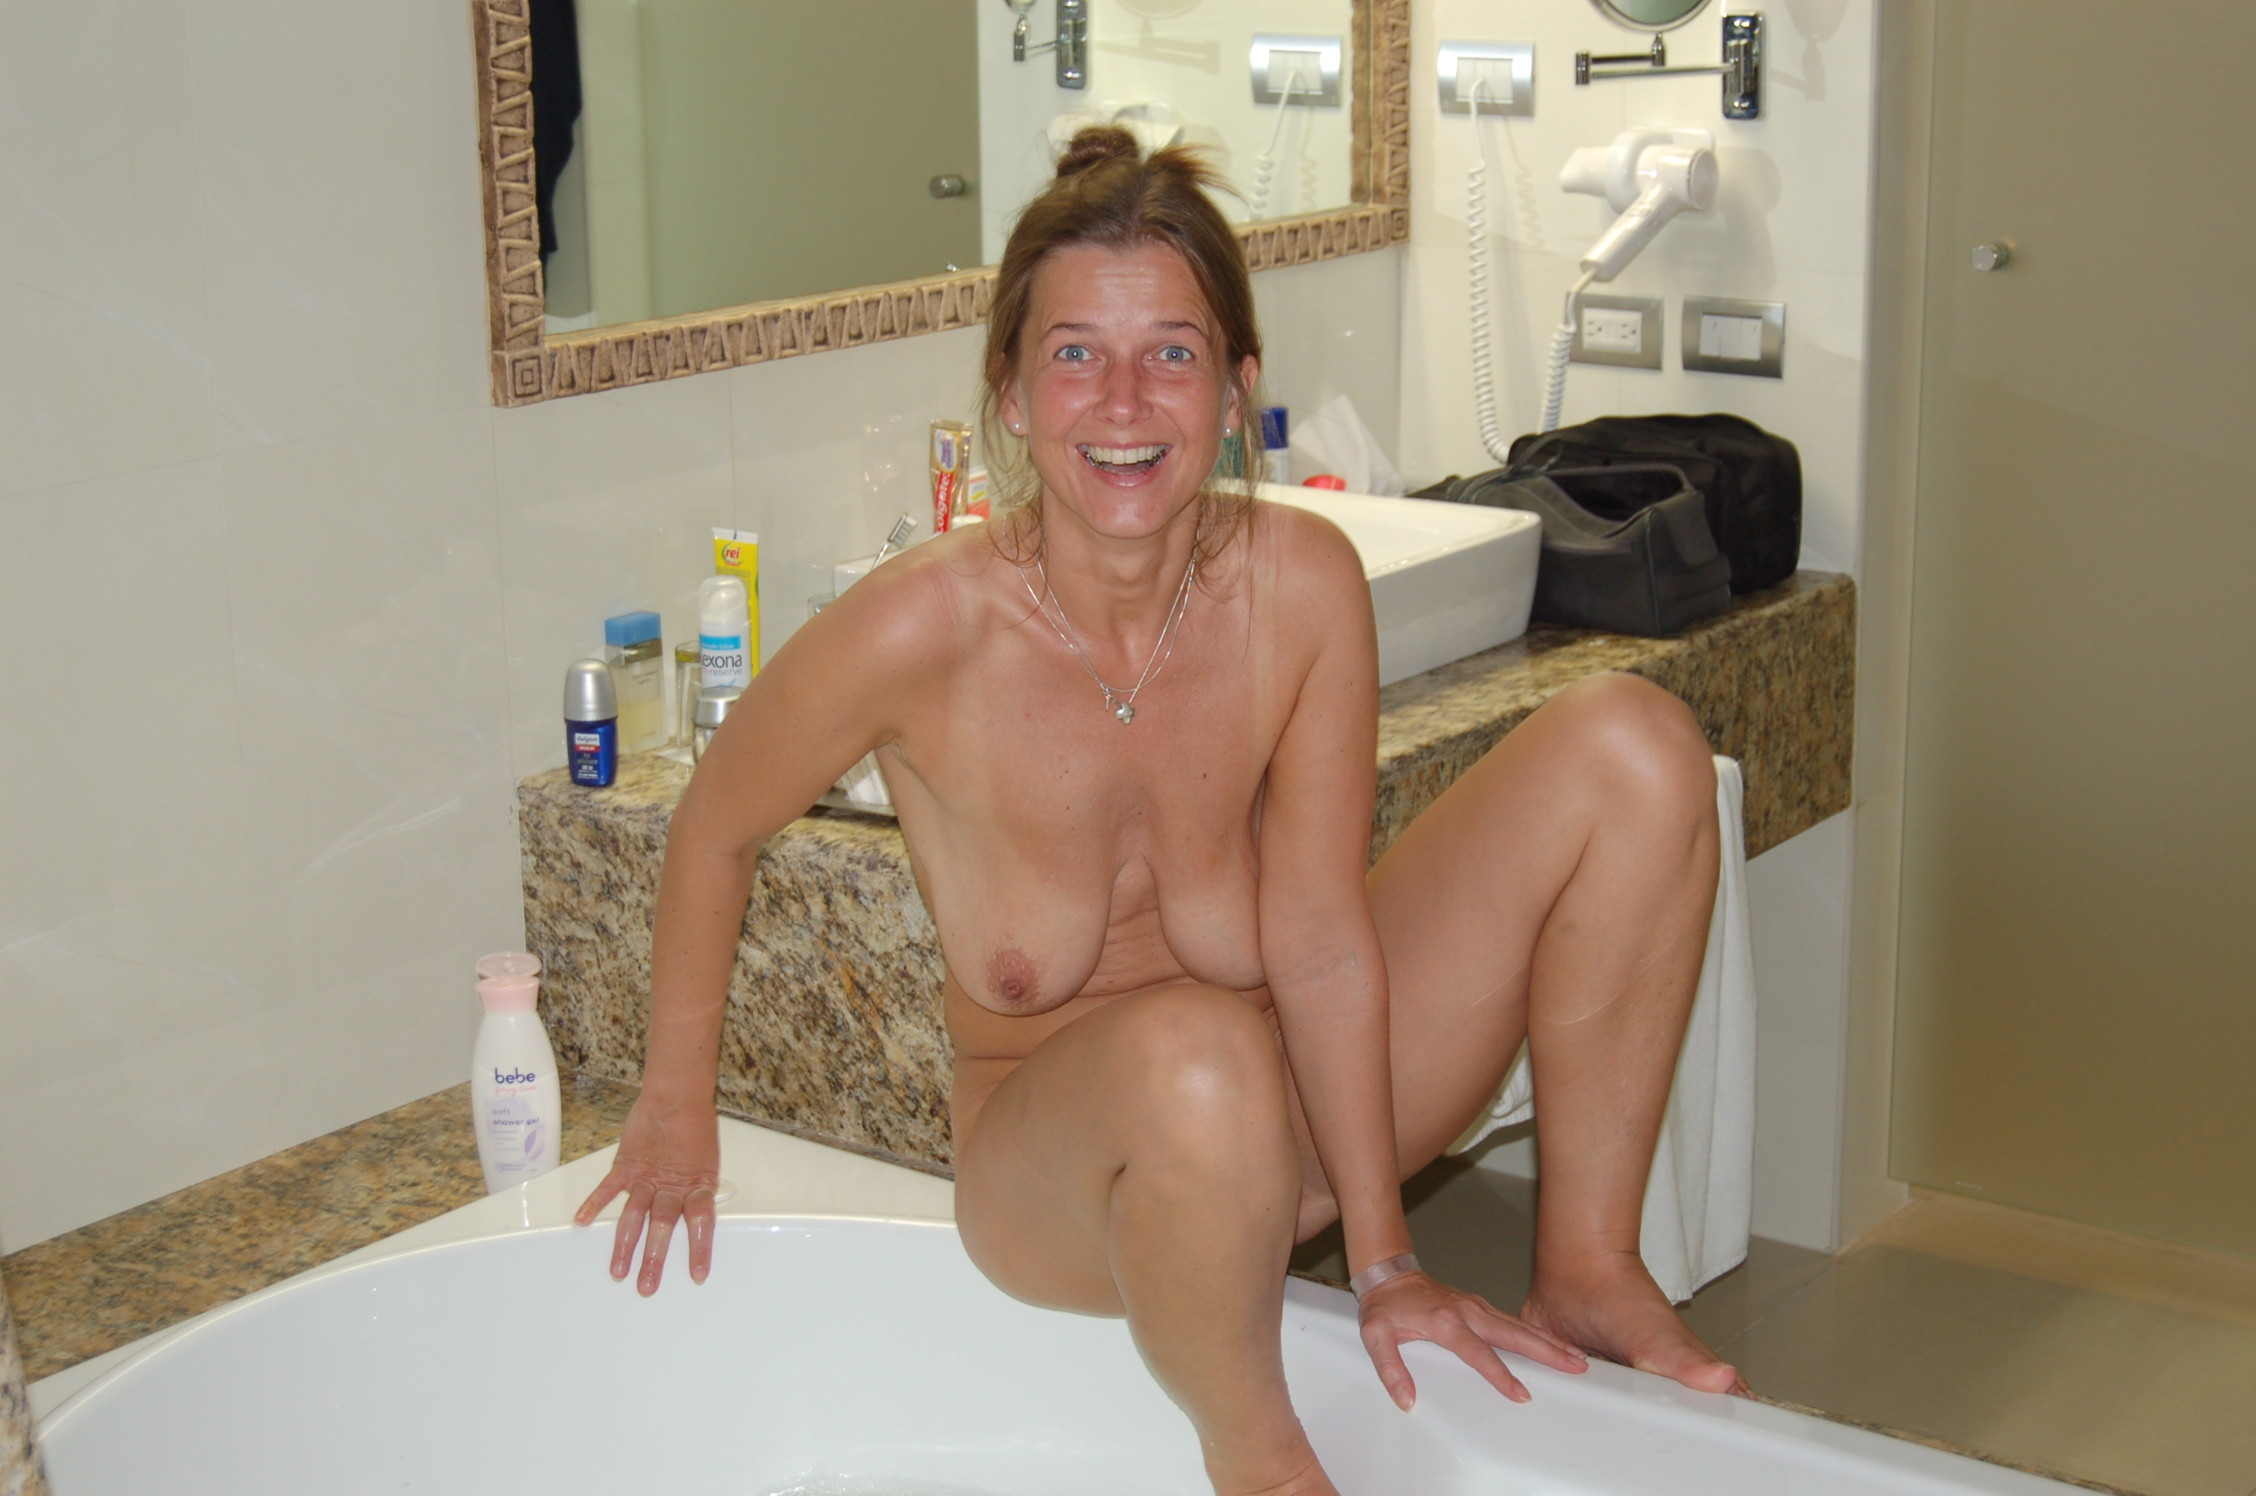 Female nude shower pics